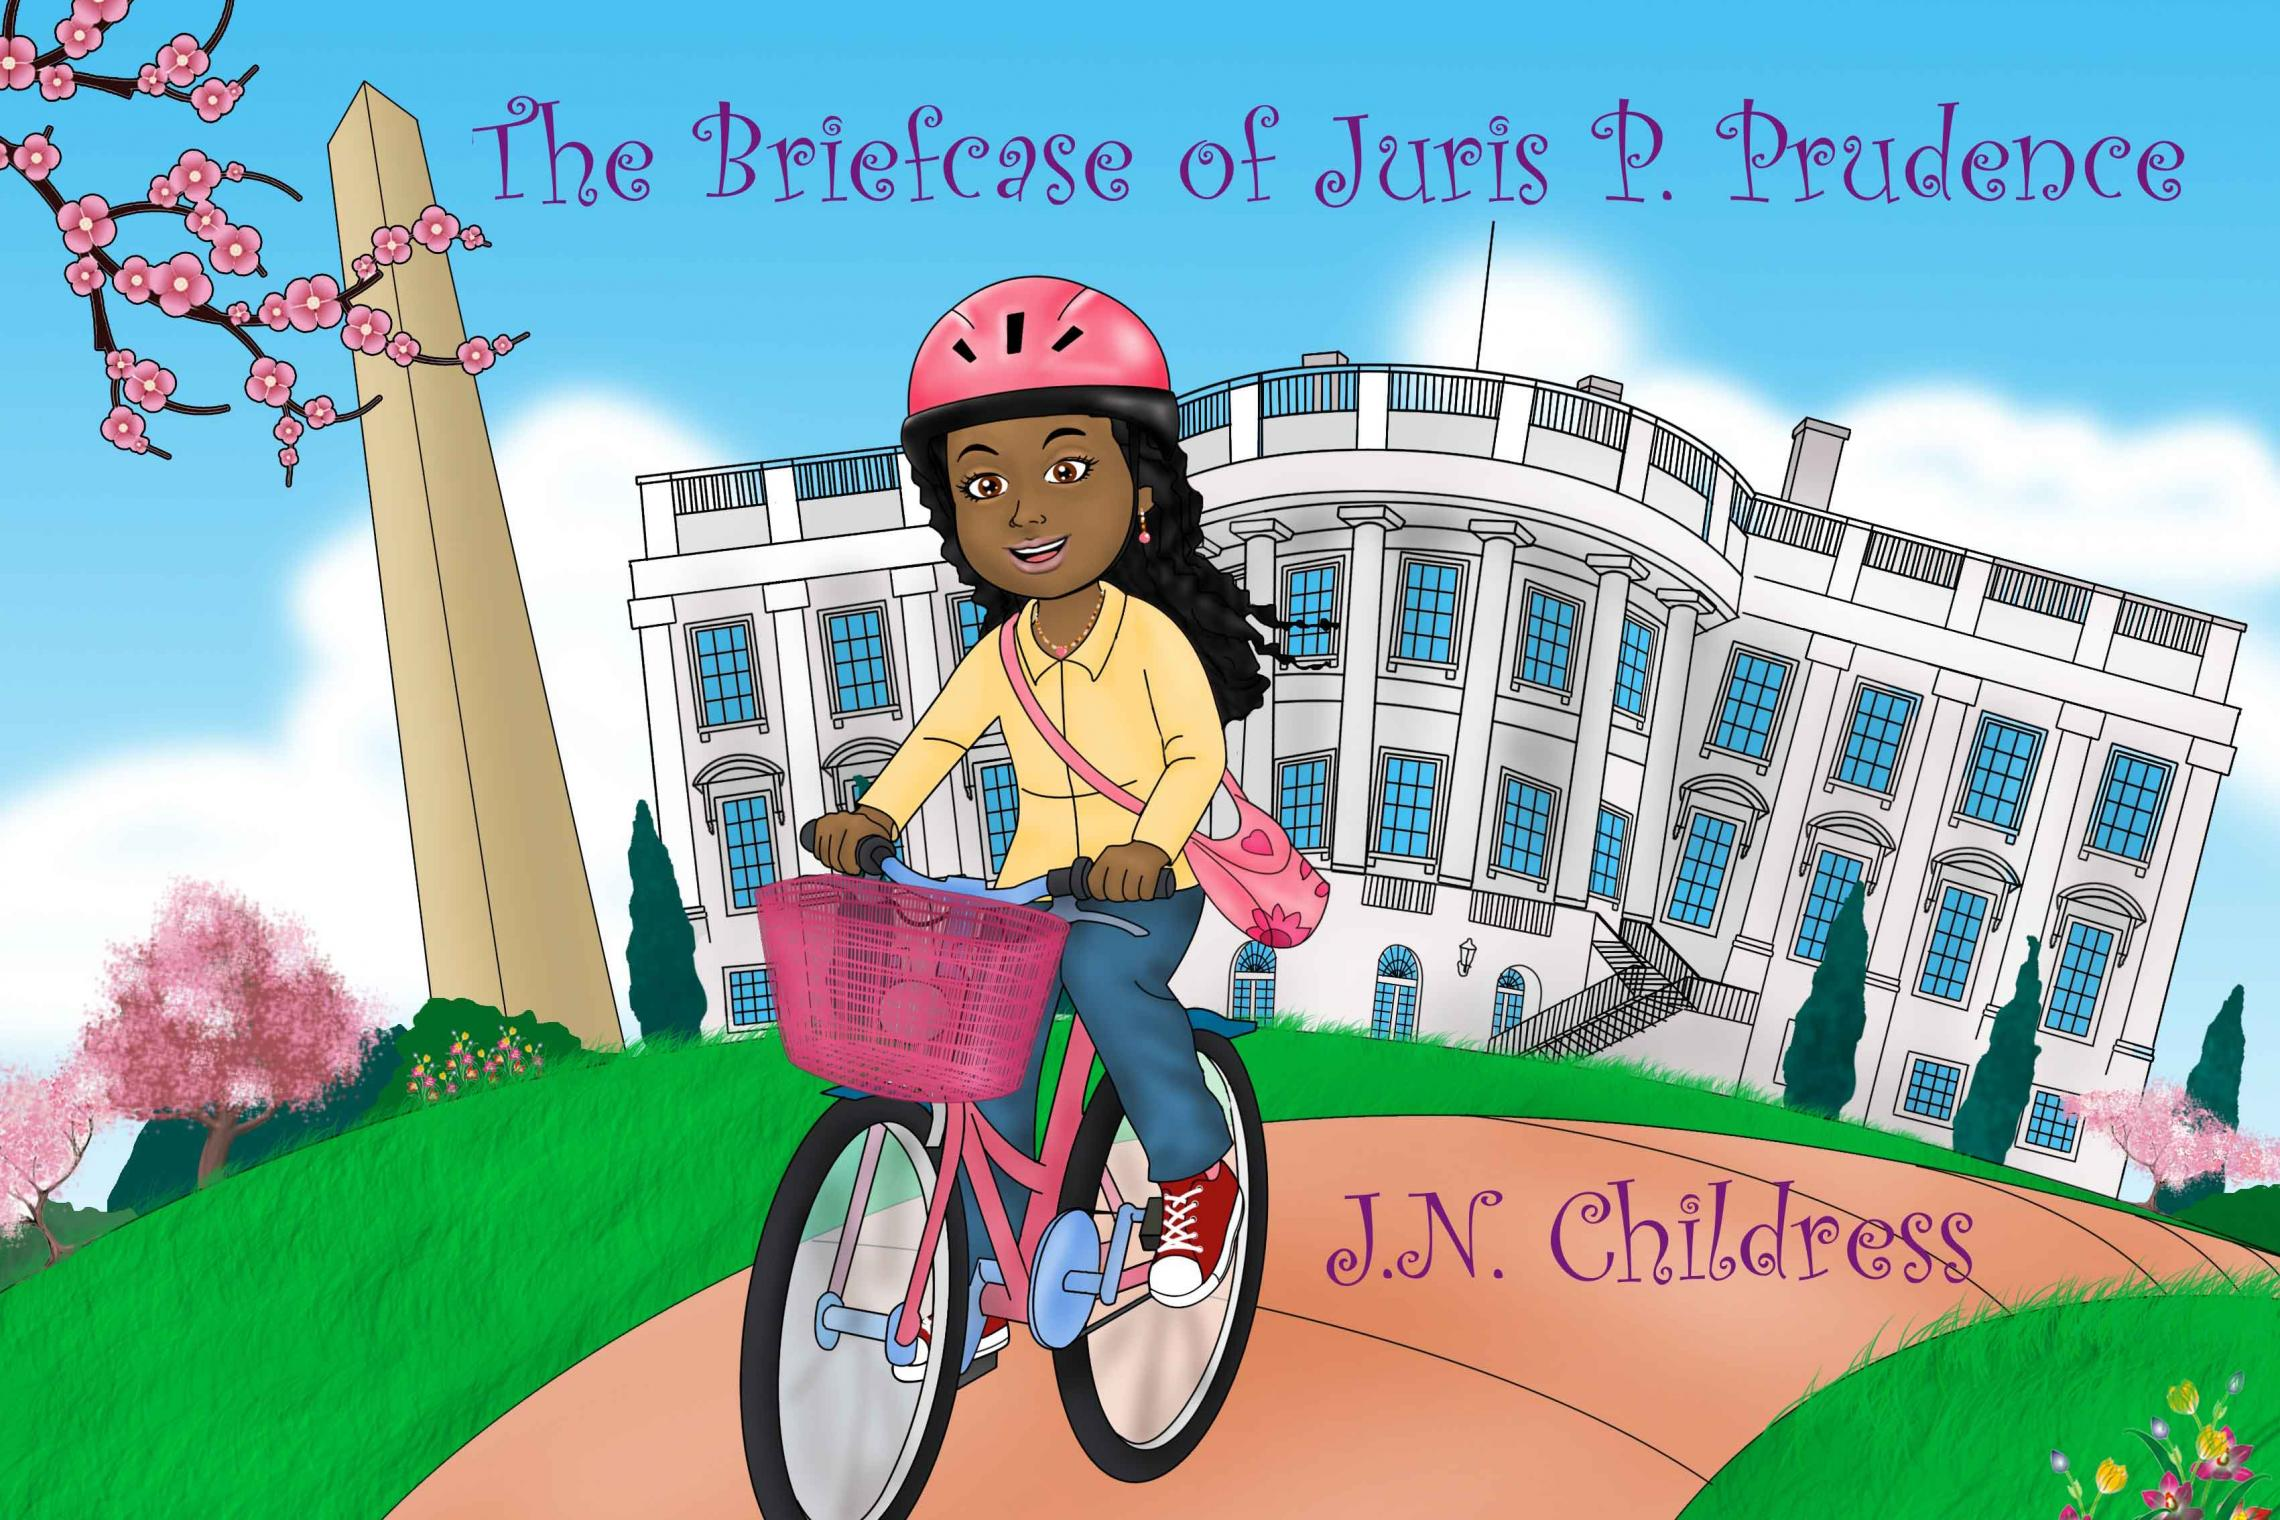 Juris P. Prudence is a fictional 11-year-old attorney who practices law with her friends Izzy, Sophie and Maddie.